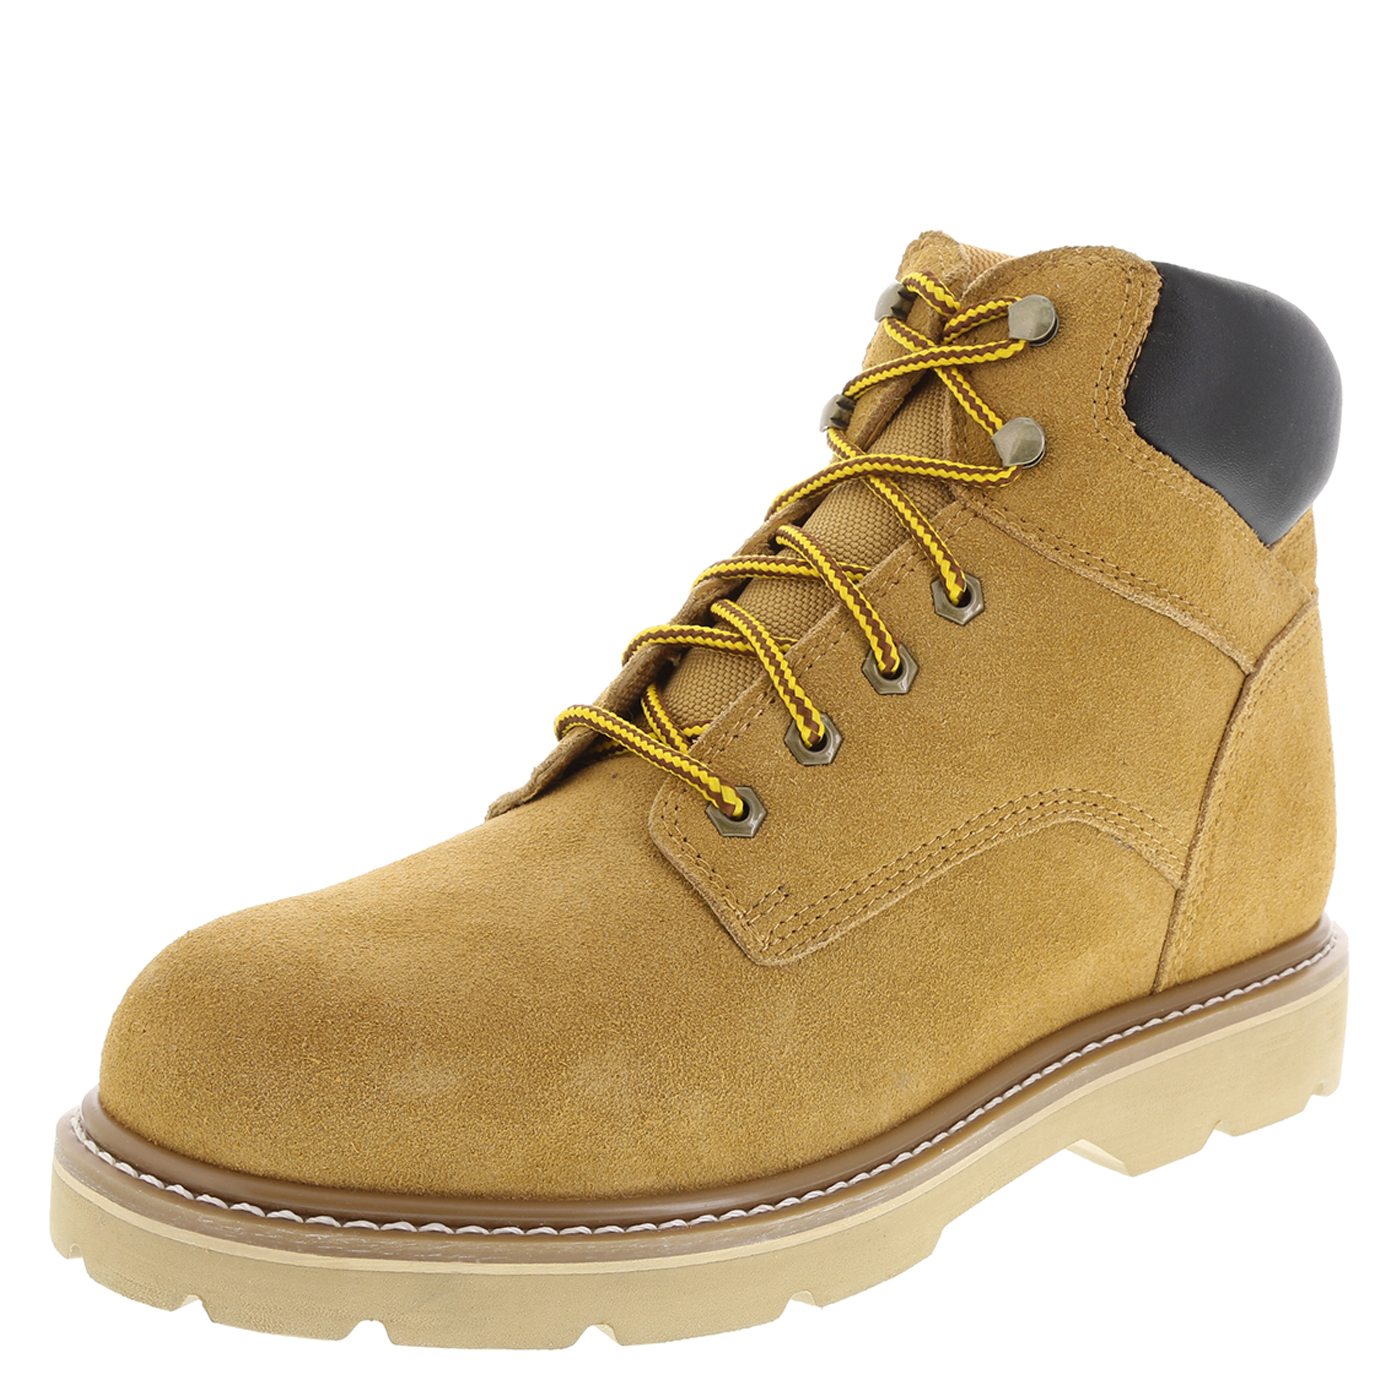 Cheap Steel Toe Work Boots hMQVKsoi